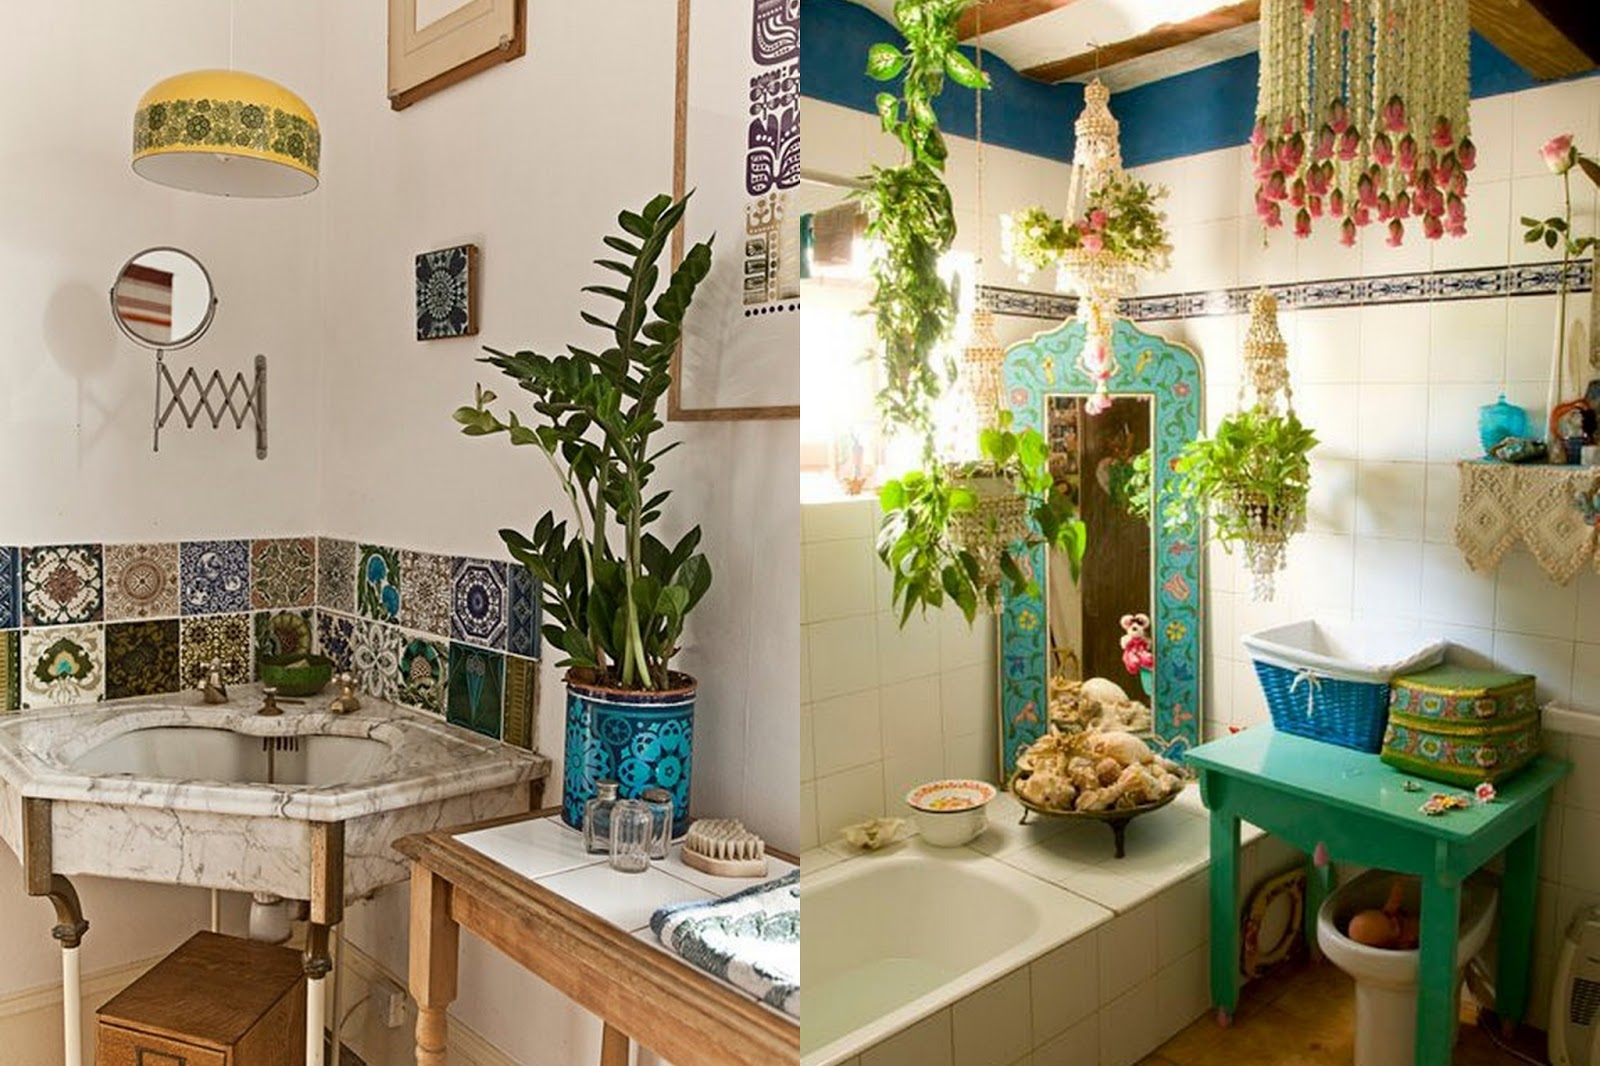 Gypsy yaya beautiful bohemian bathrooms for Decoration accessoire